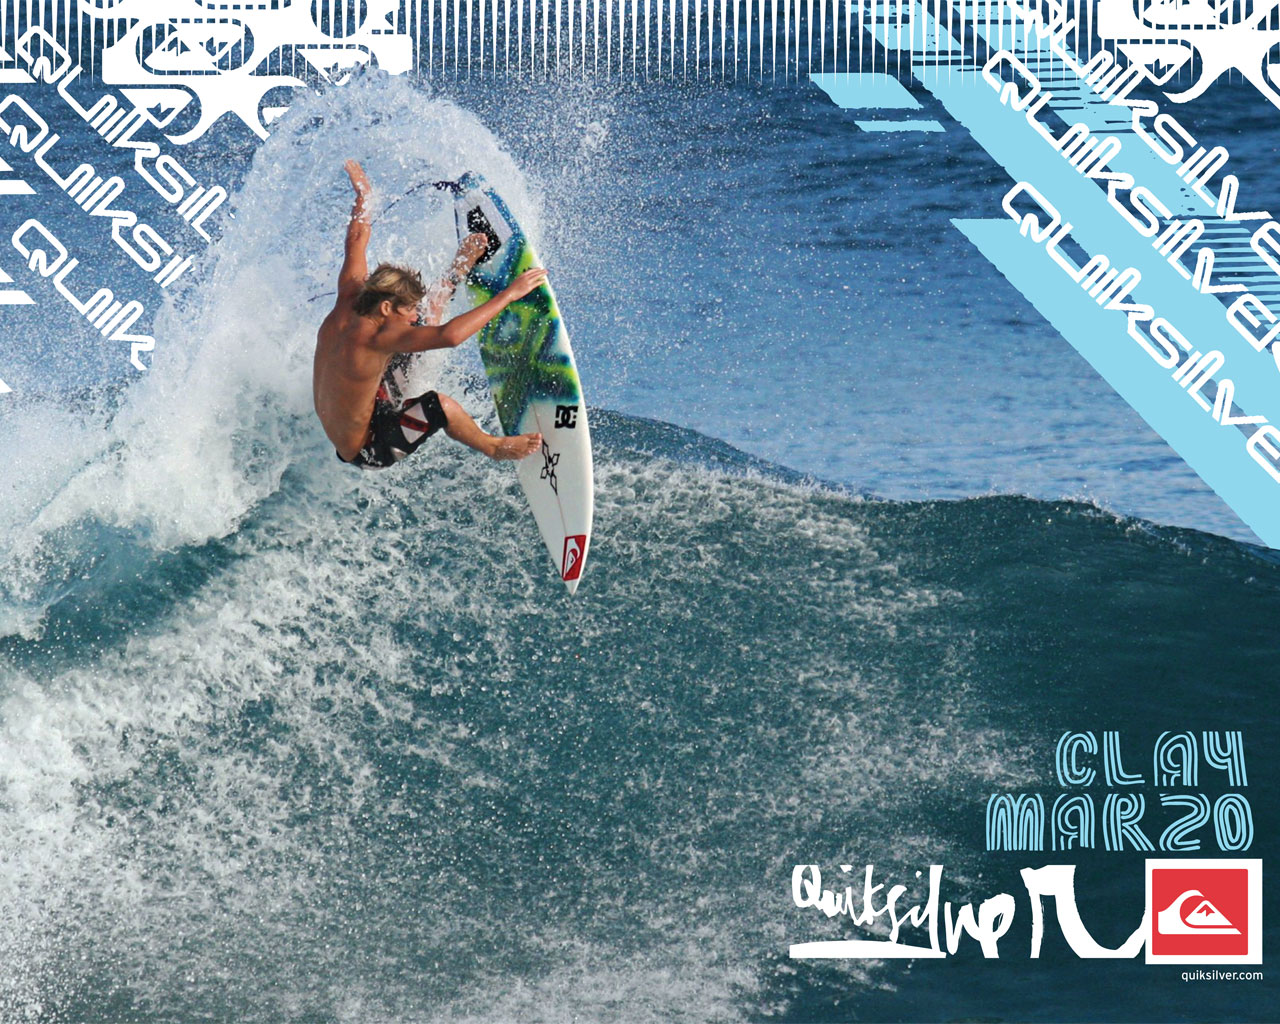 quiksilver surf wallpaper hd - photo #21